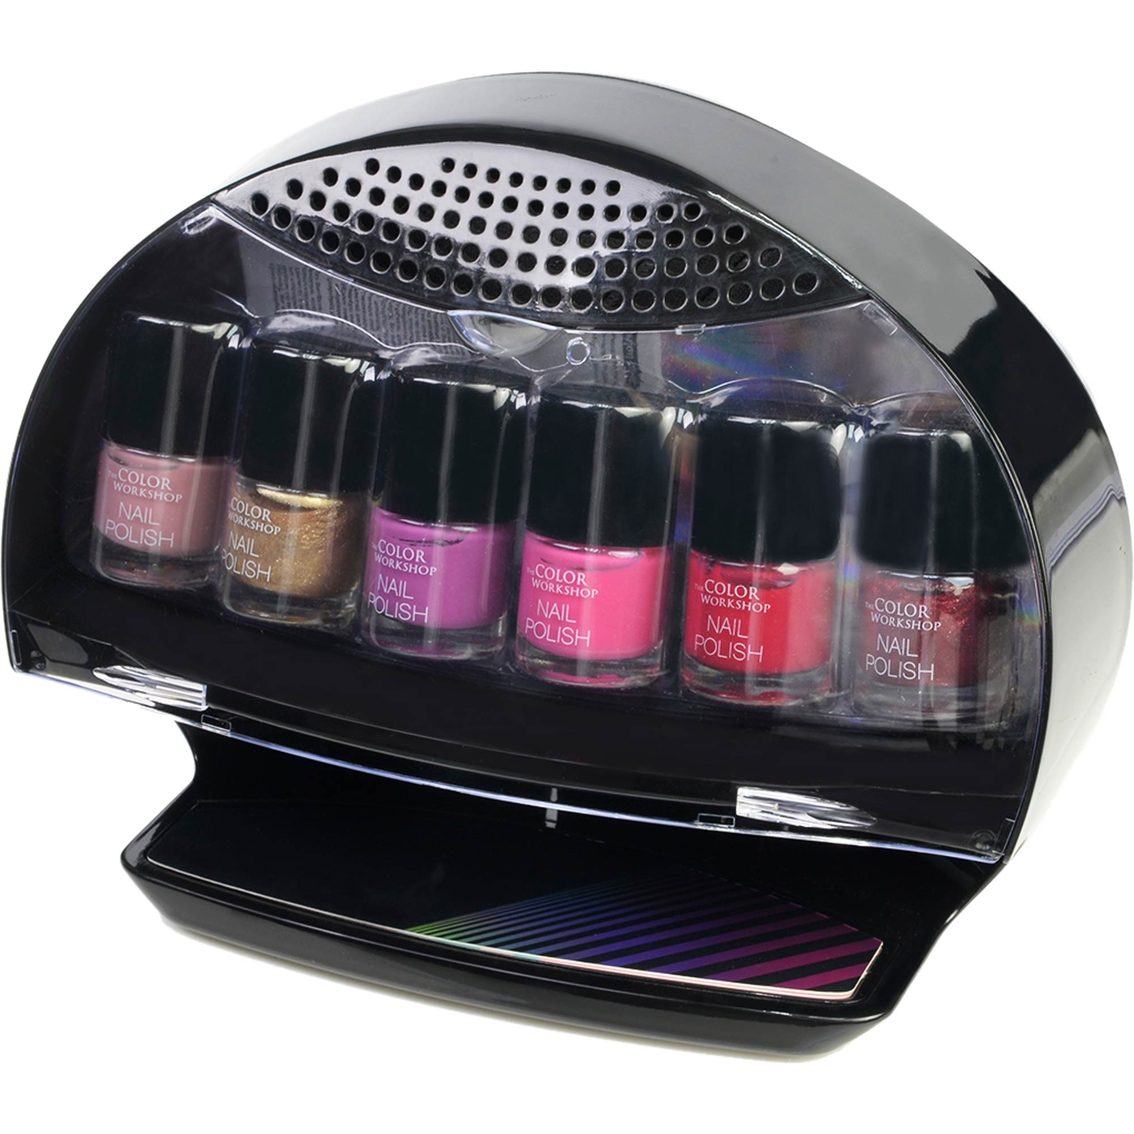 Nail Dryer Product: The Color Workshop Home Salon Nail Dryer 7 Pc. Set